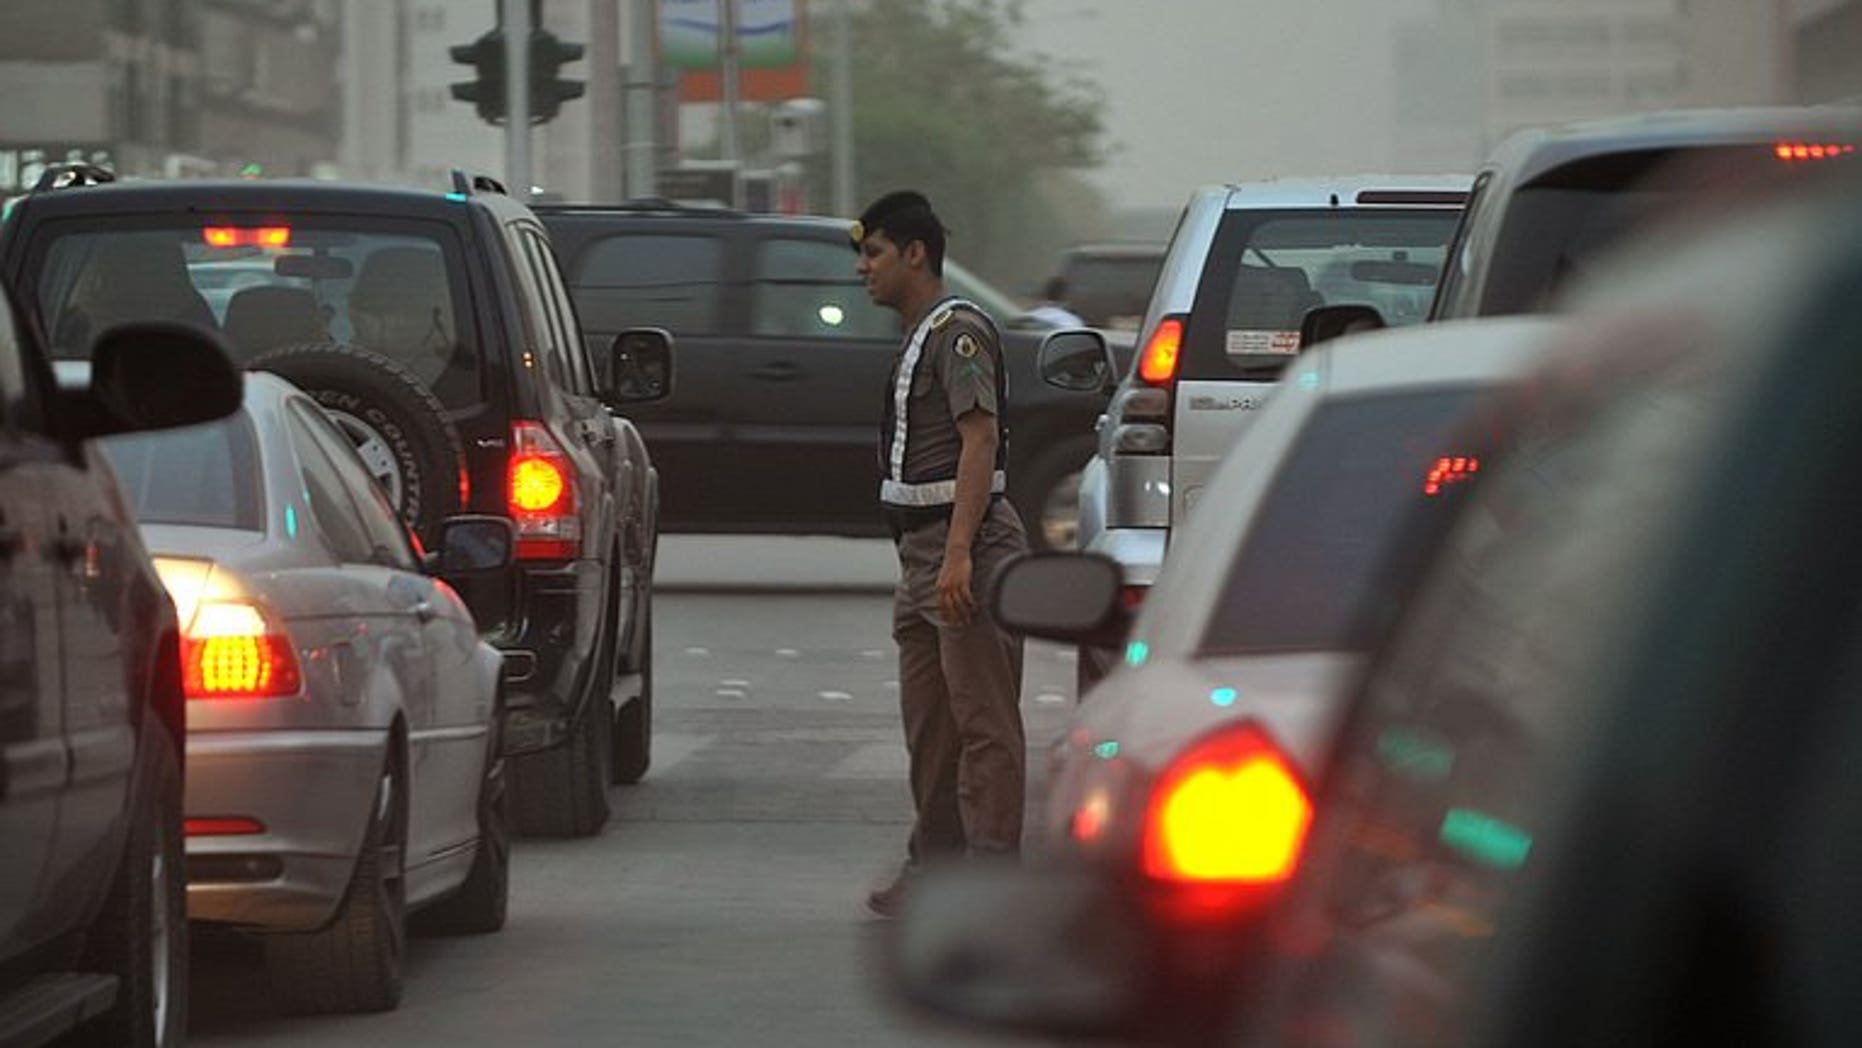 File picture shows a Saudi policeman monitoring traffic in Riyadh. Saudi Arabia has granted three foreign consortiums contracts to build a Riyadh metro, a project worth $22.5 billion, the kingdom announced at a news conference in the capital late on Sunday.